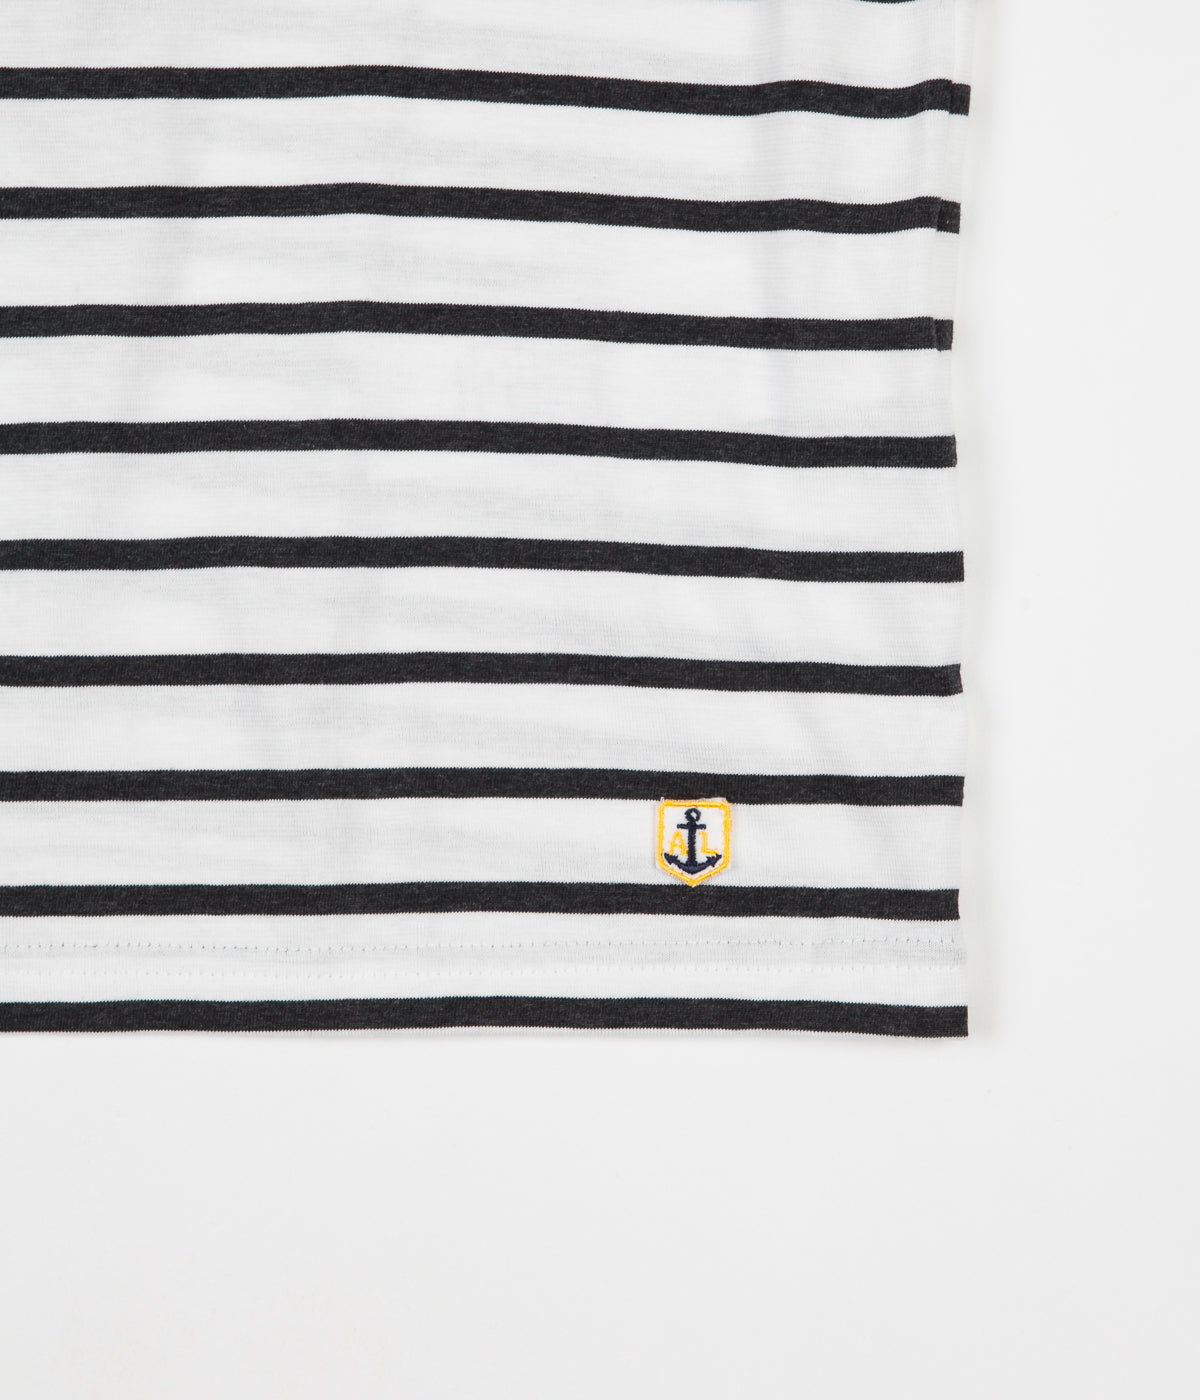 Armor Lux Breton Sailor Striped T-Shirt - Milk / Ebony